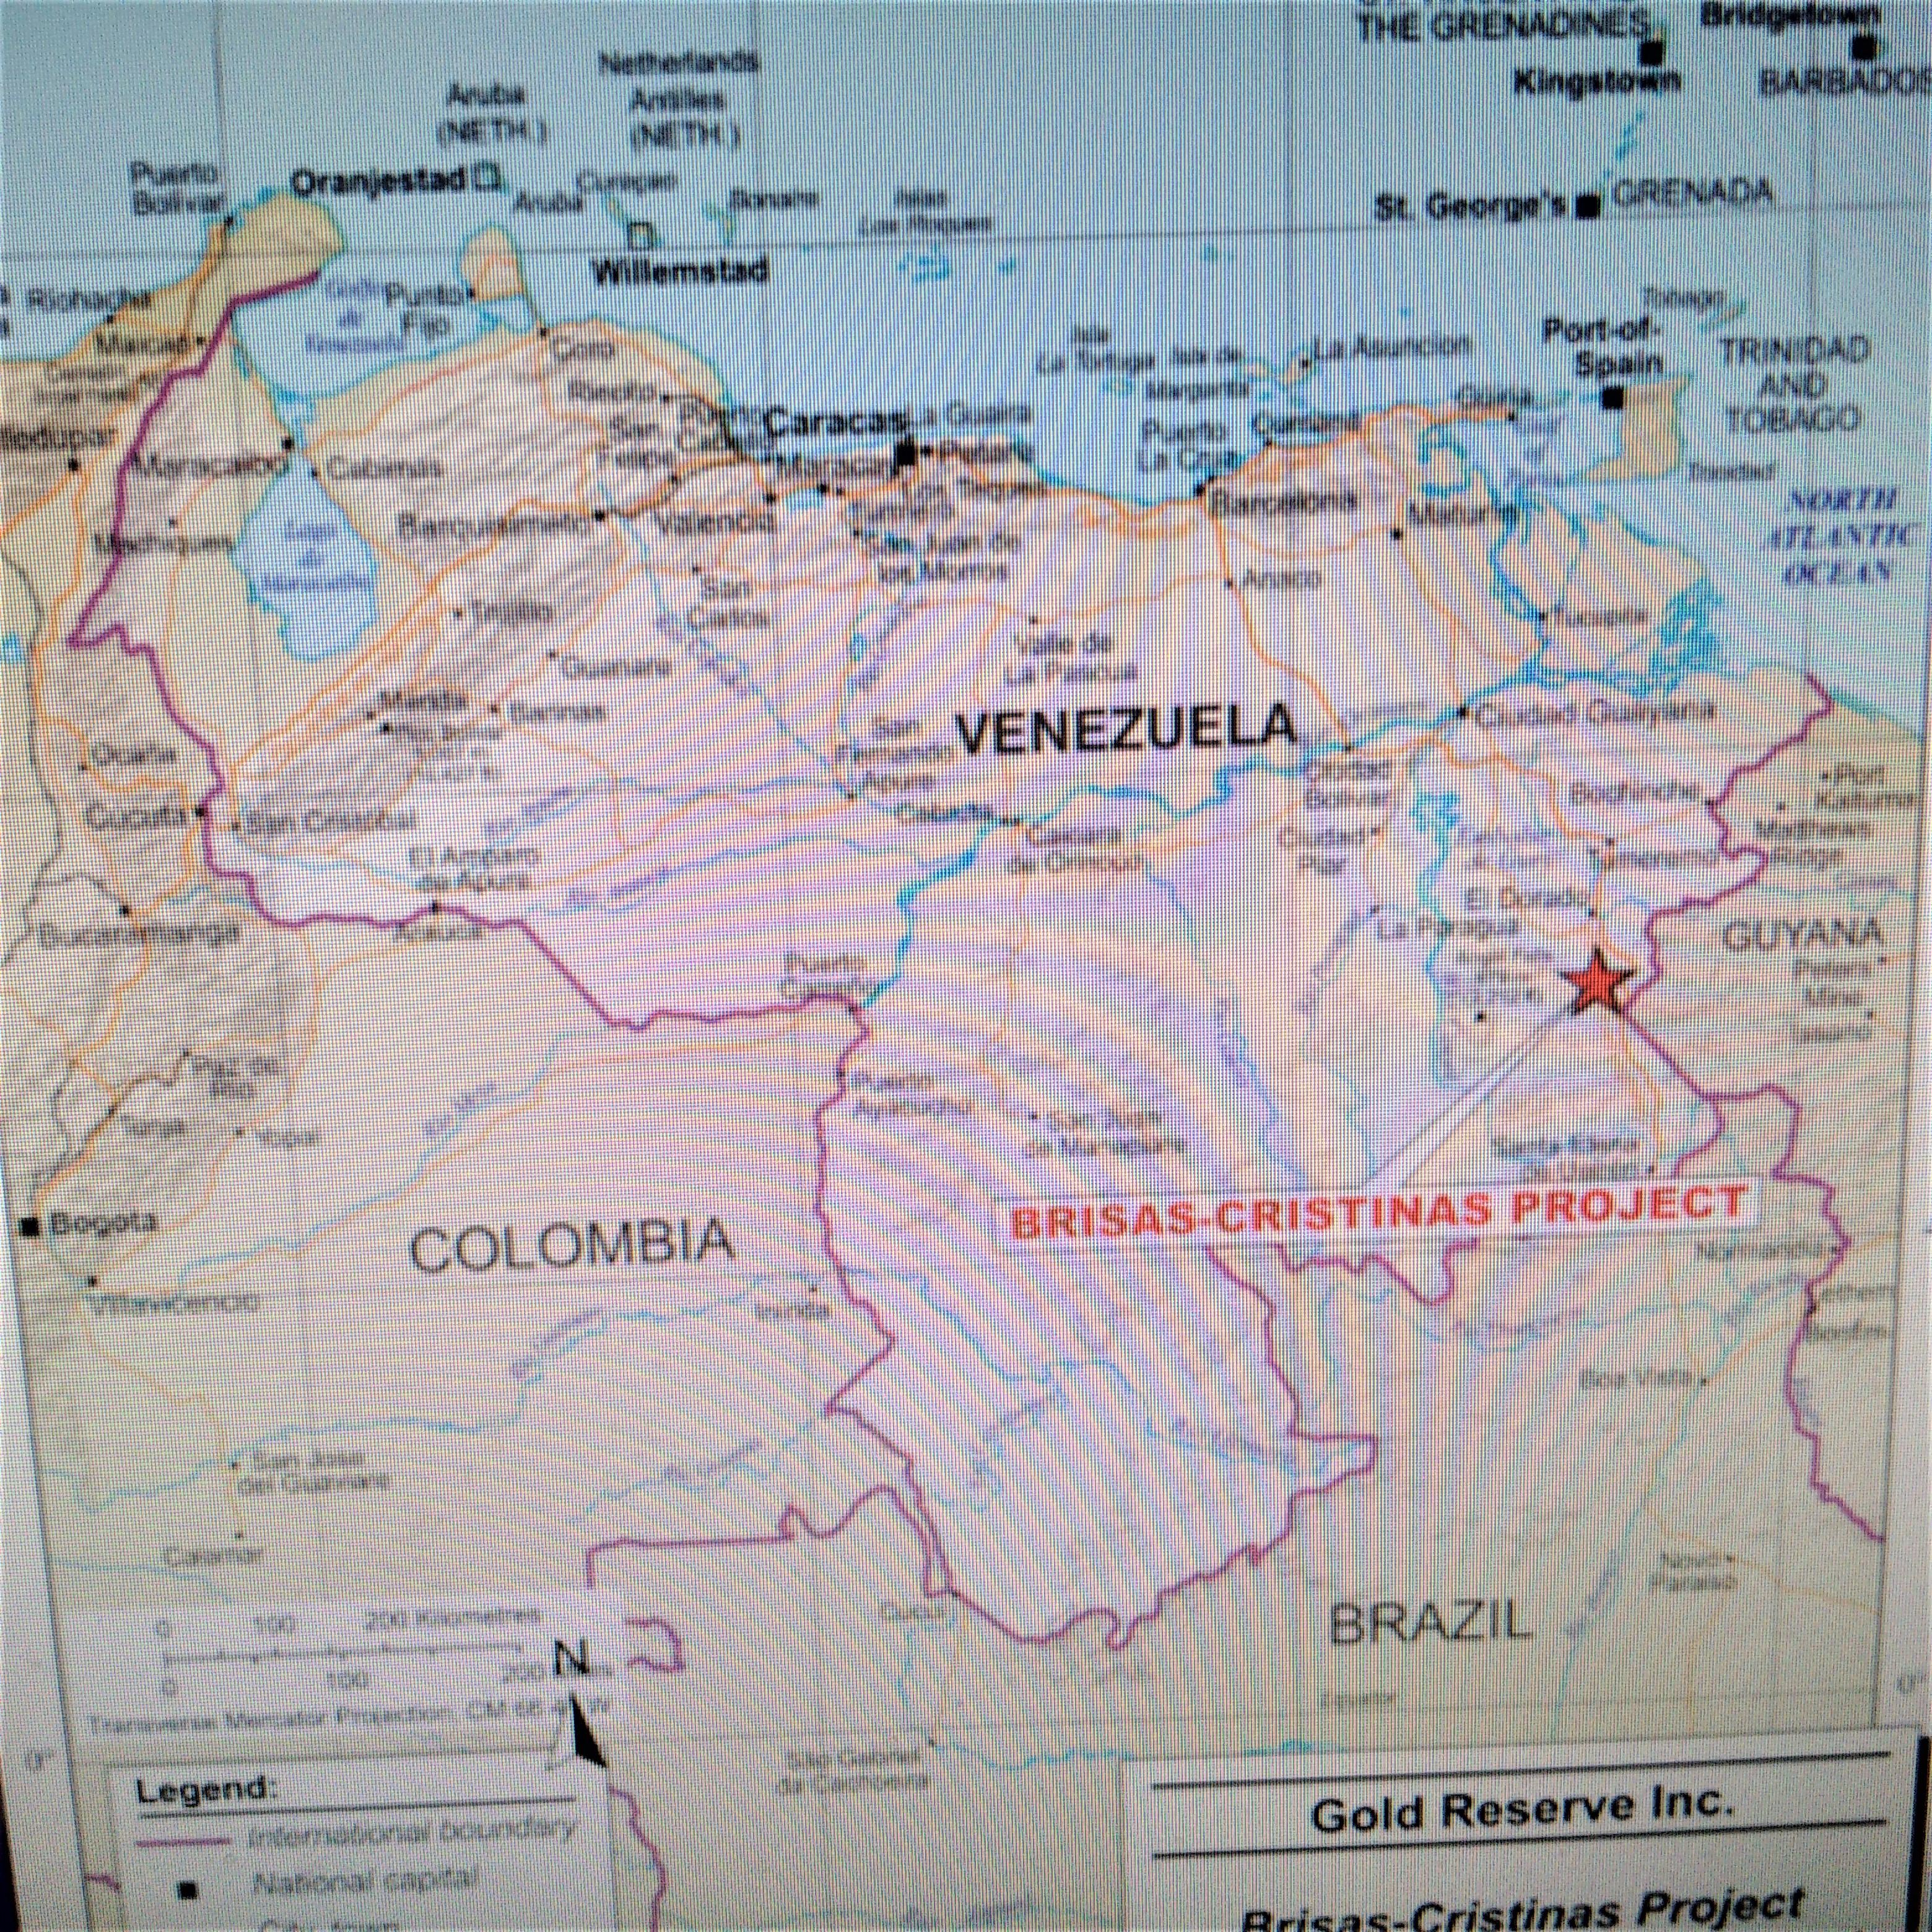 according to its may 2007 prospectus found on sedar its february 2005 brisas project bankable feasibility study was updated by a national instrument 43 101